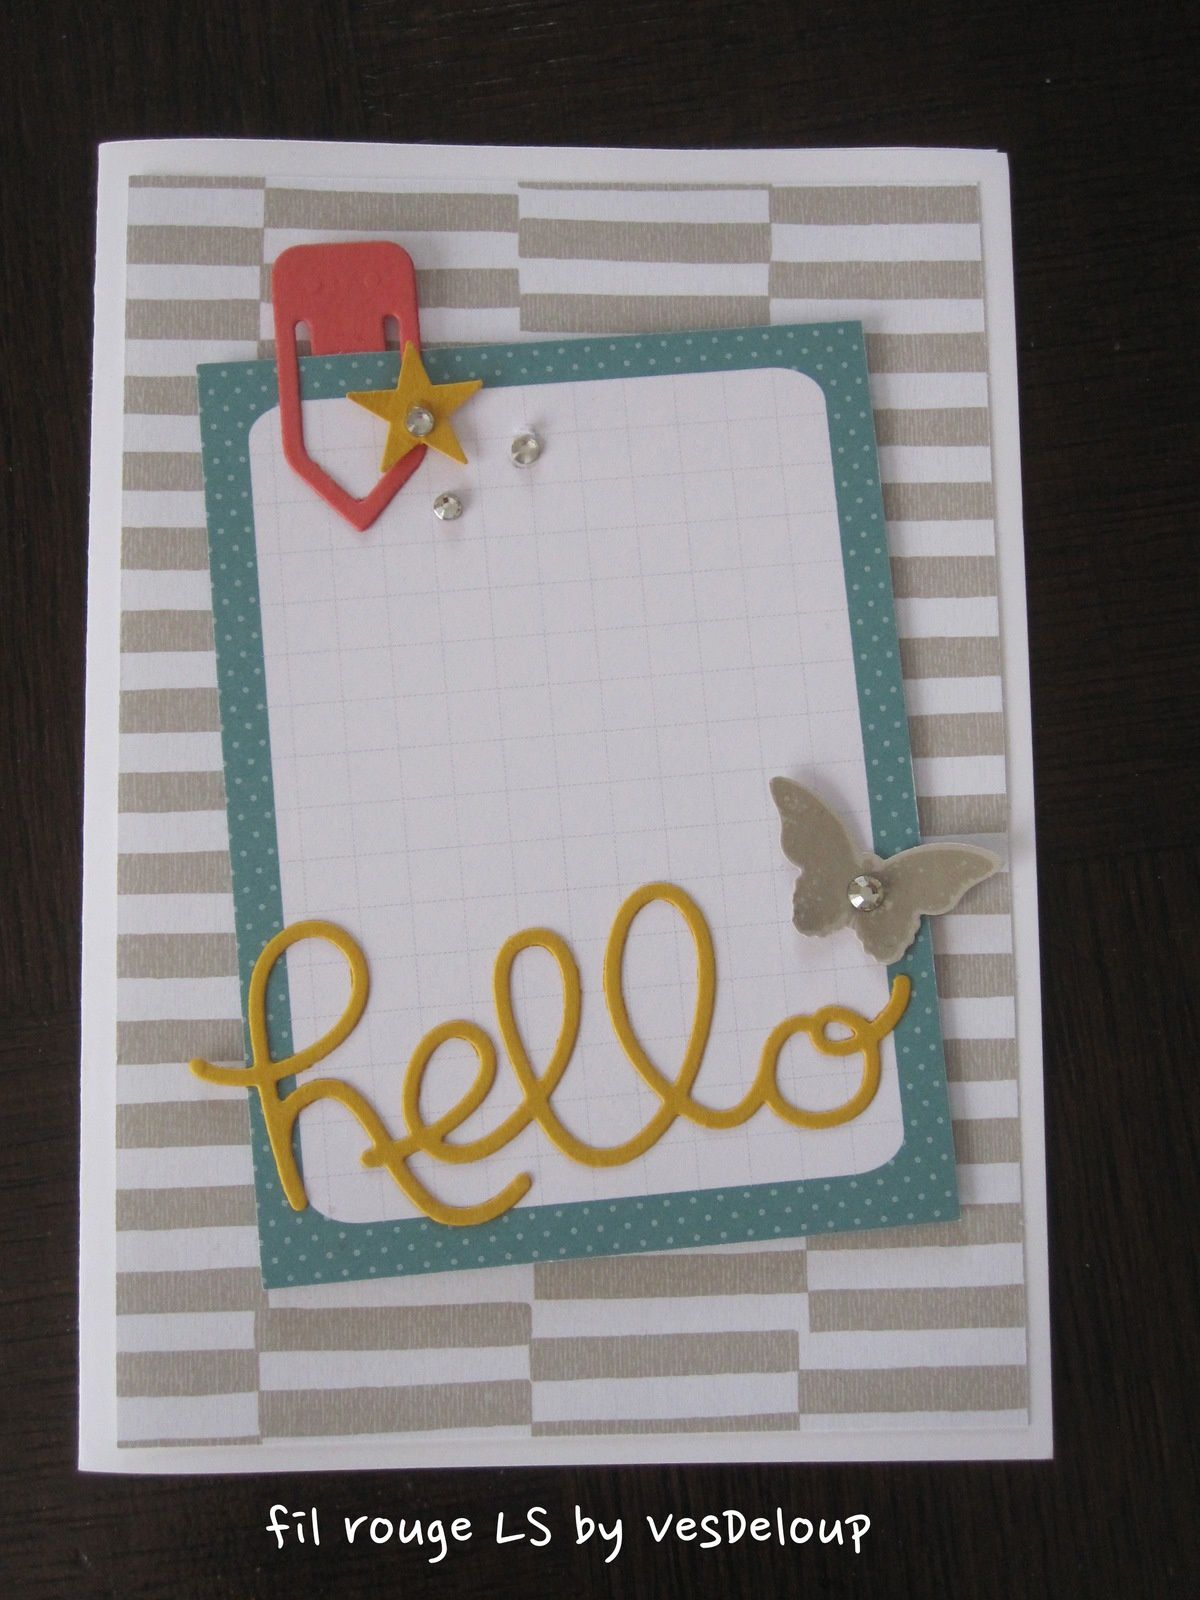 Fil rouge sur Little scrap